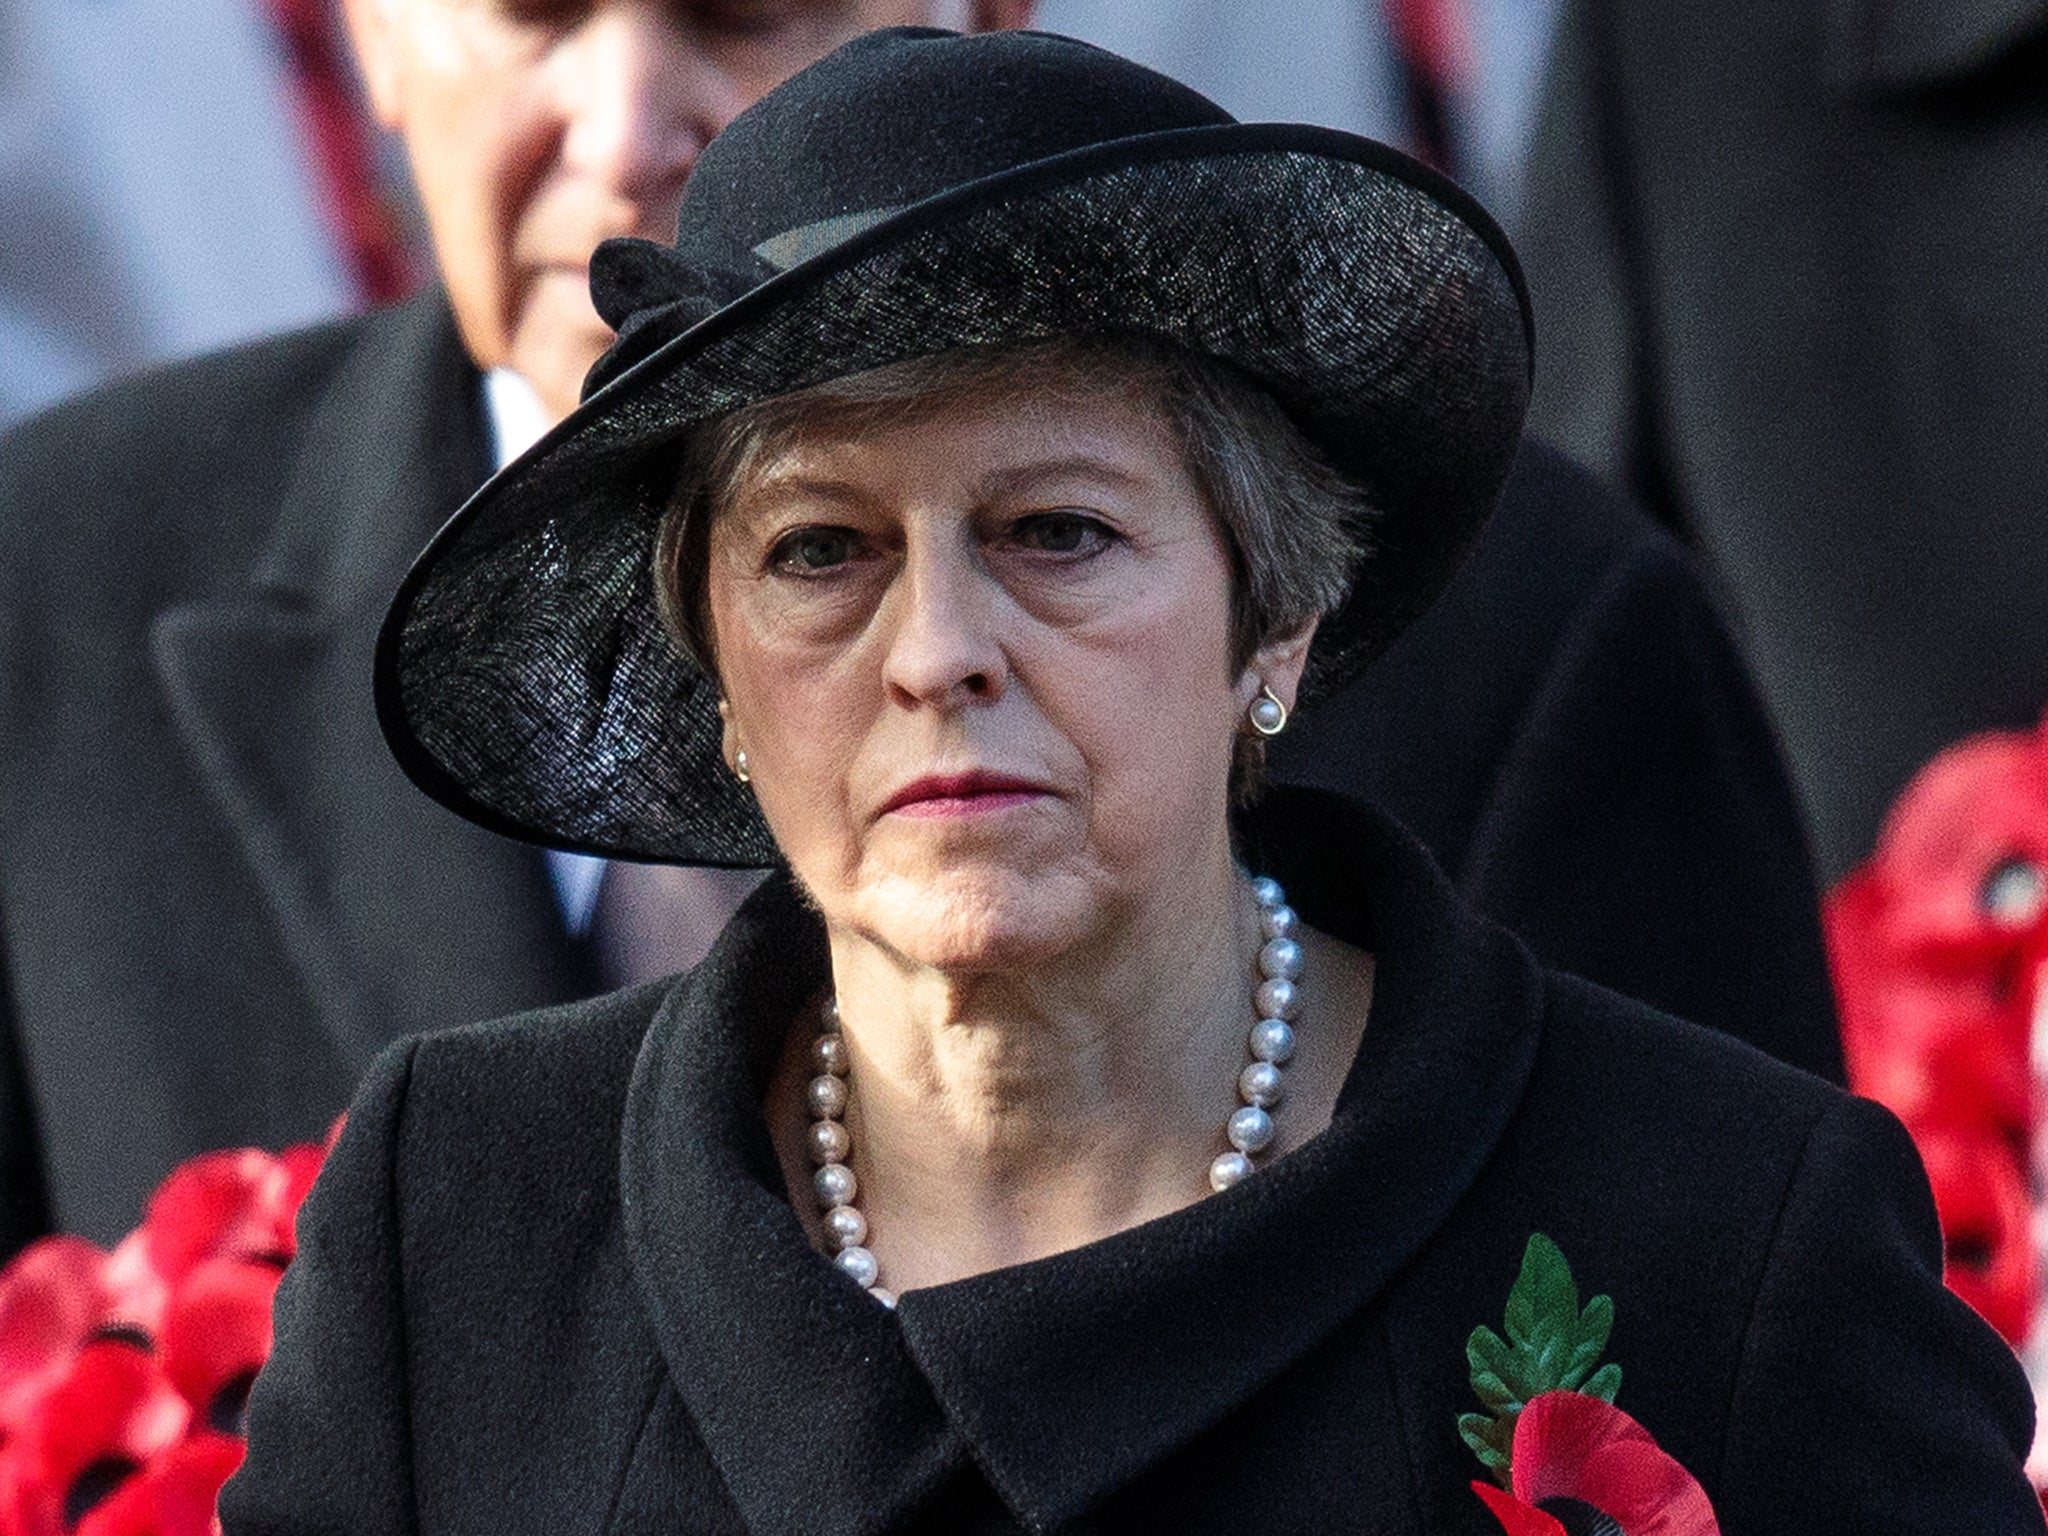 Brexit timetable thrown into turmoil as Theresa May is forced to cancel planned cabinet meeting to approve her deal